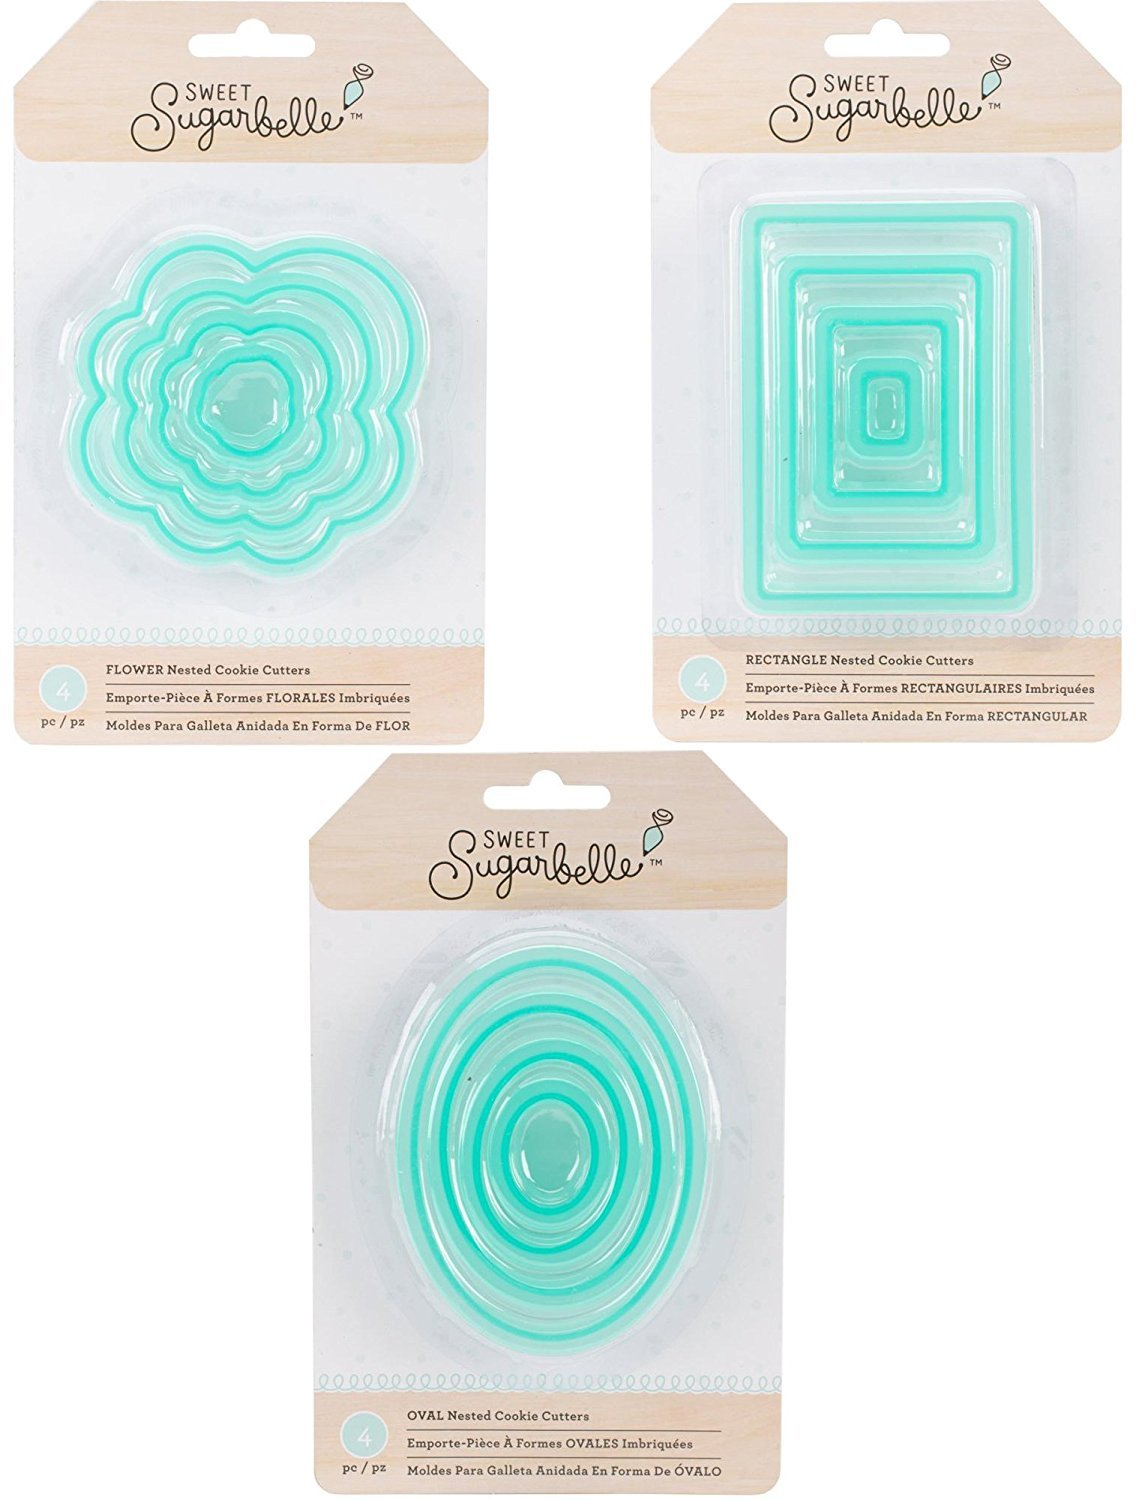 Amazon.com: Sweet Sugarbelle - Nested Cookie Cutter Sets - Flower, Rectangle & Oval - 12 Cutters Bundle: Kitchen & Dining